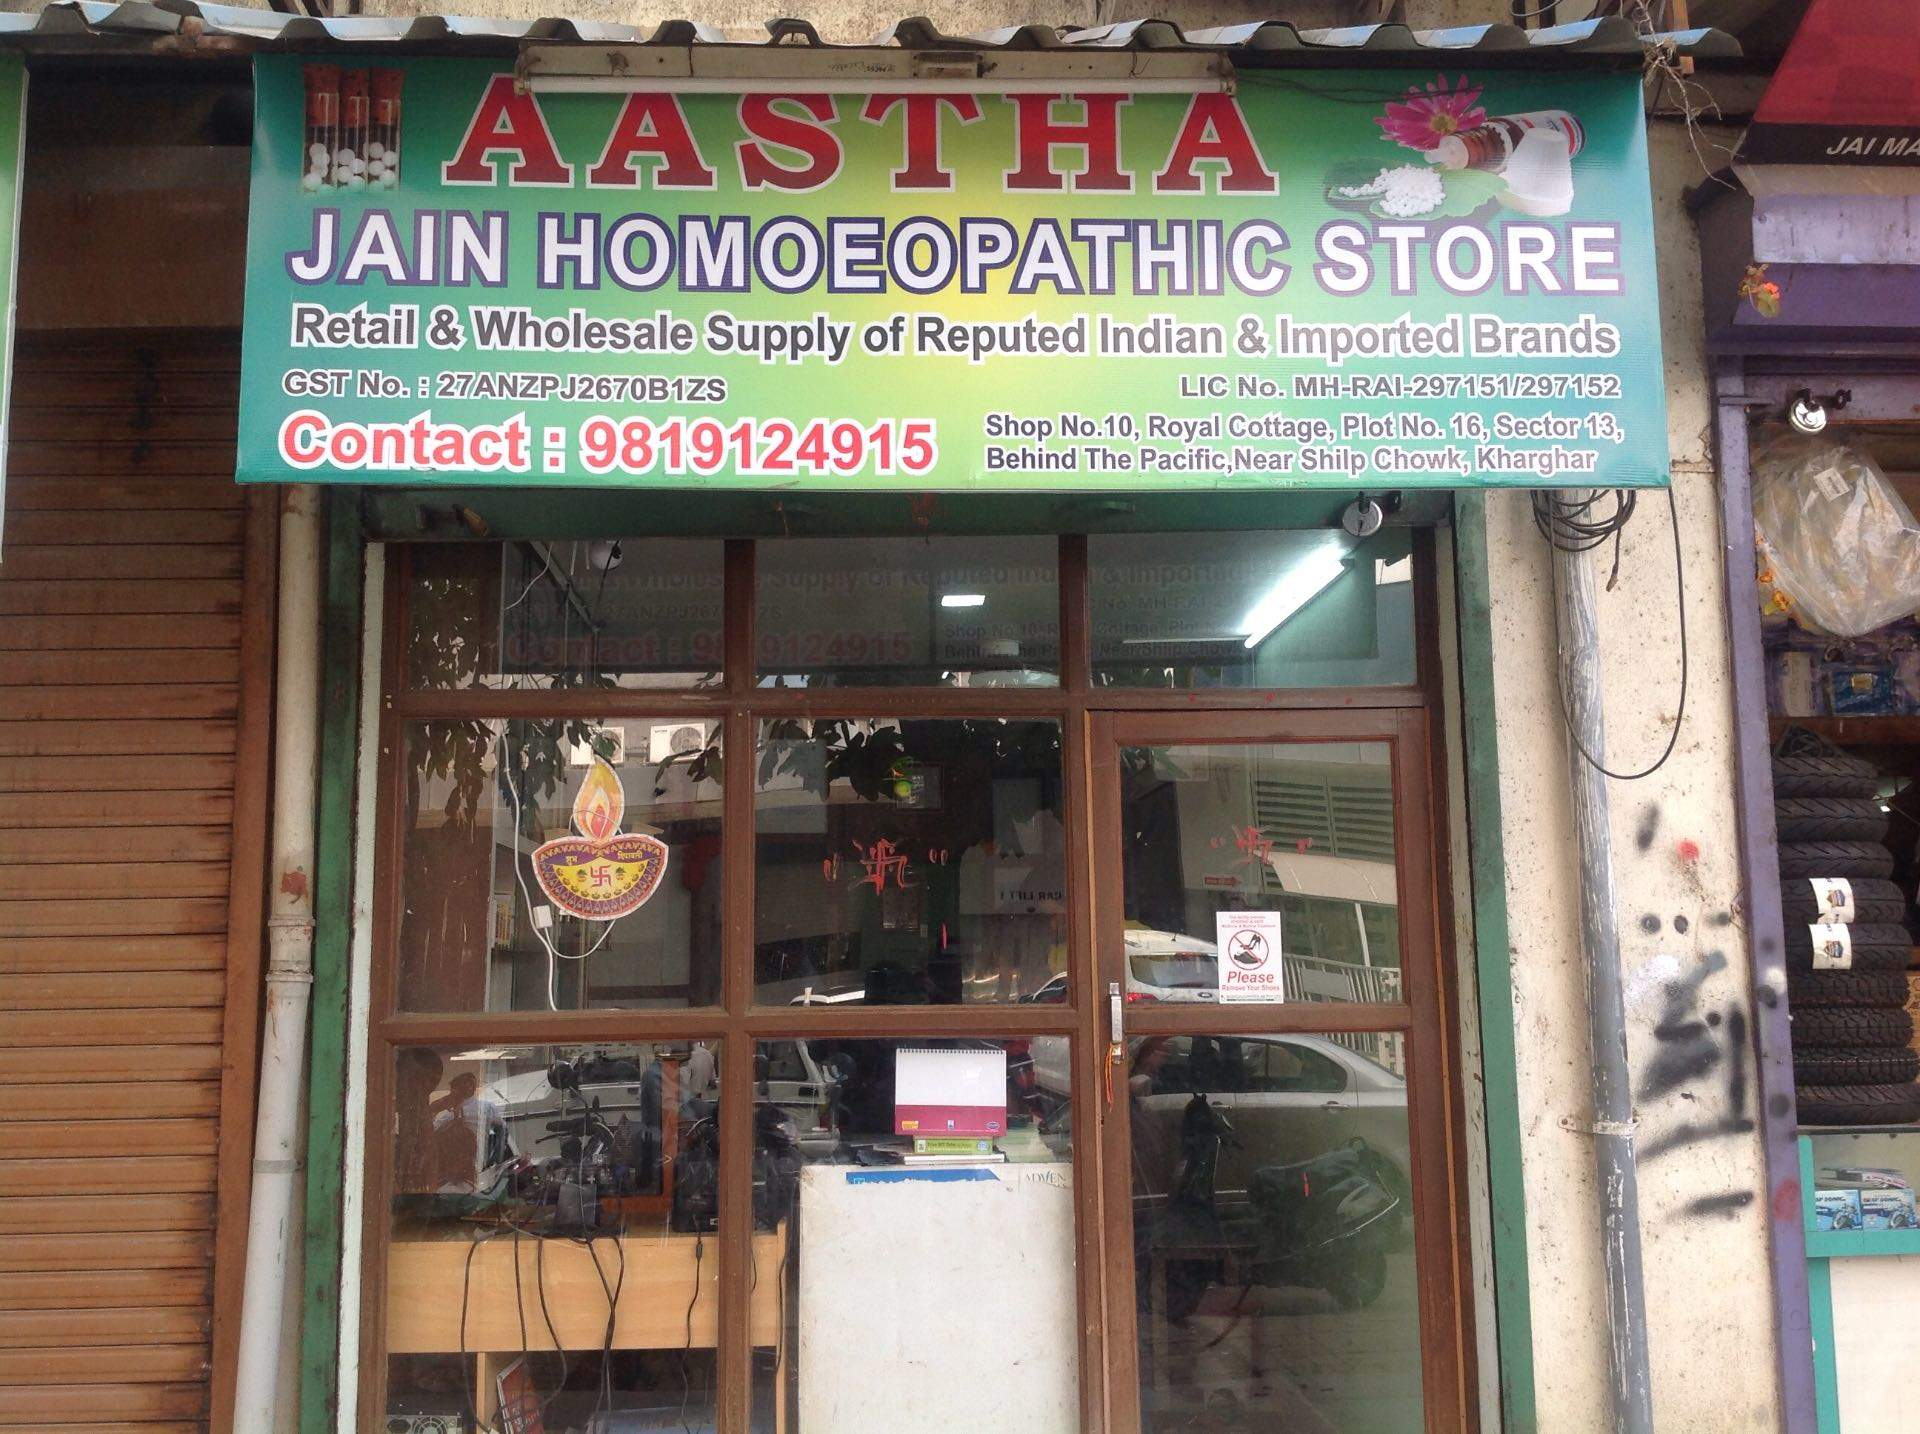 Top Dr Reckeweg Homeopathic Medicine Wholesalers in Borivali West